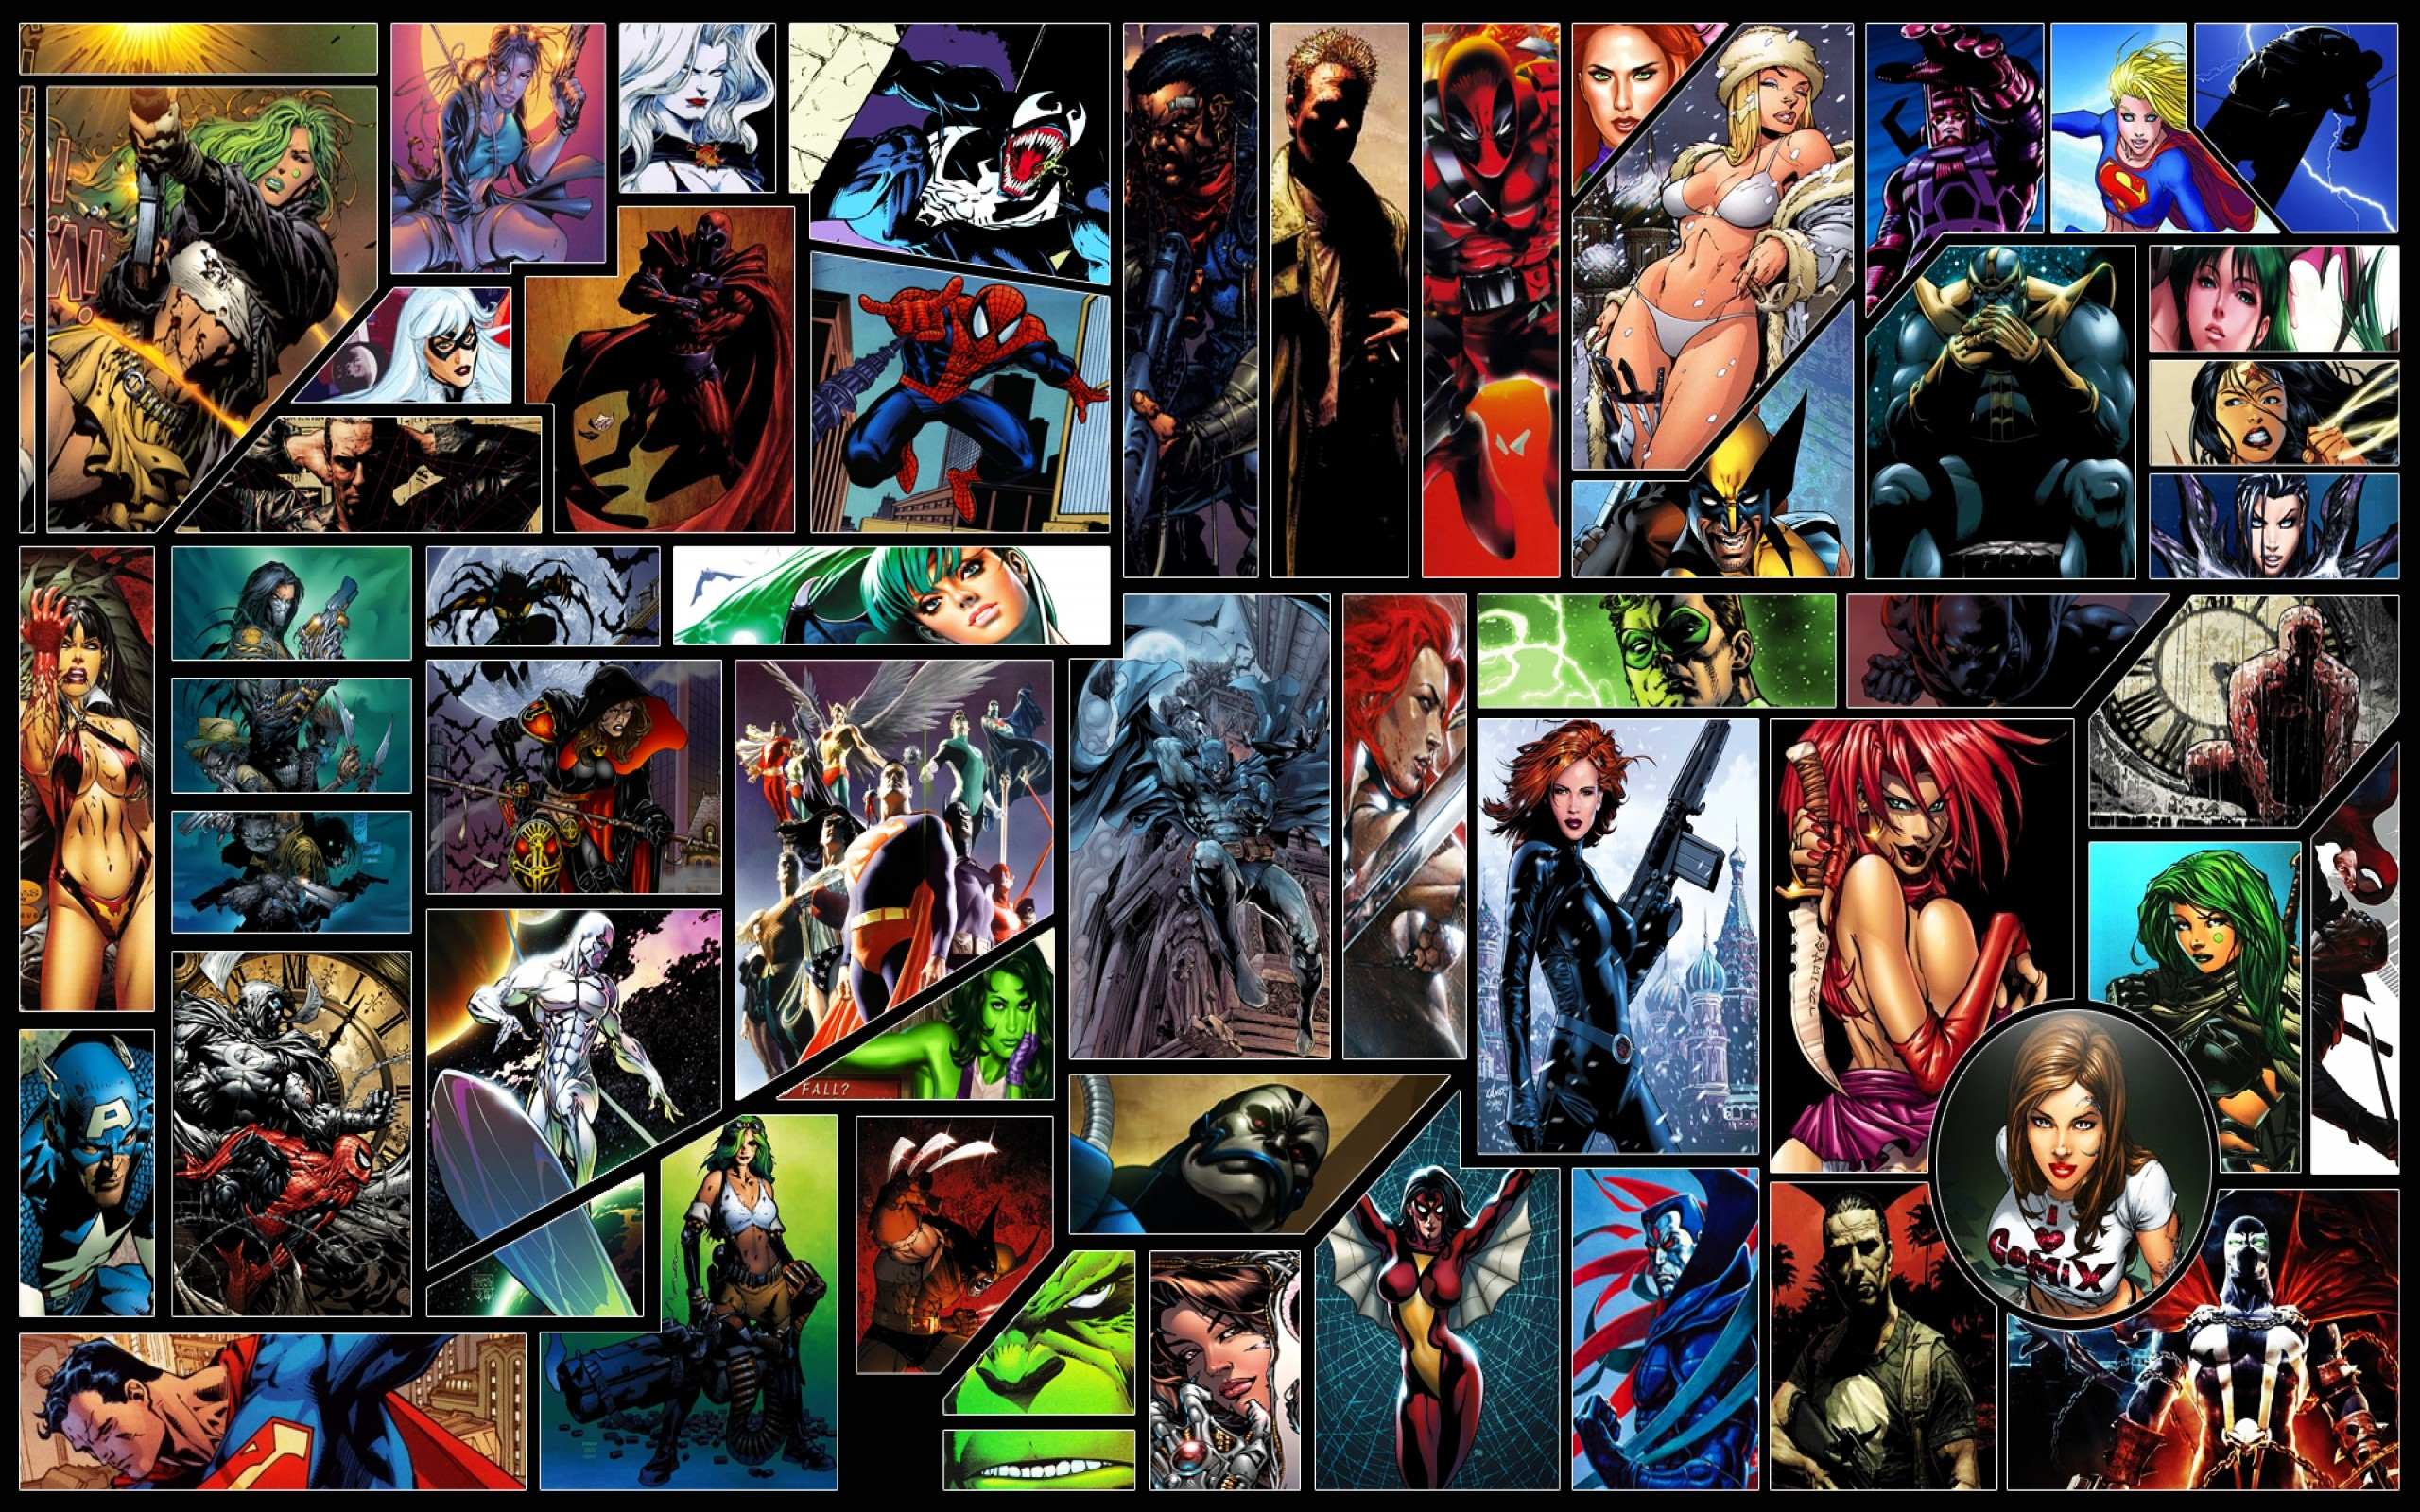 Free Download Dc Superheroes Wallpaper 2560x1600 For Your